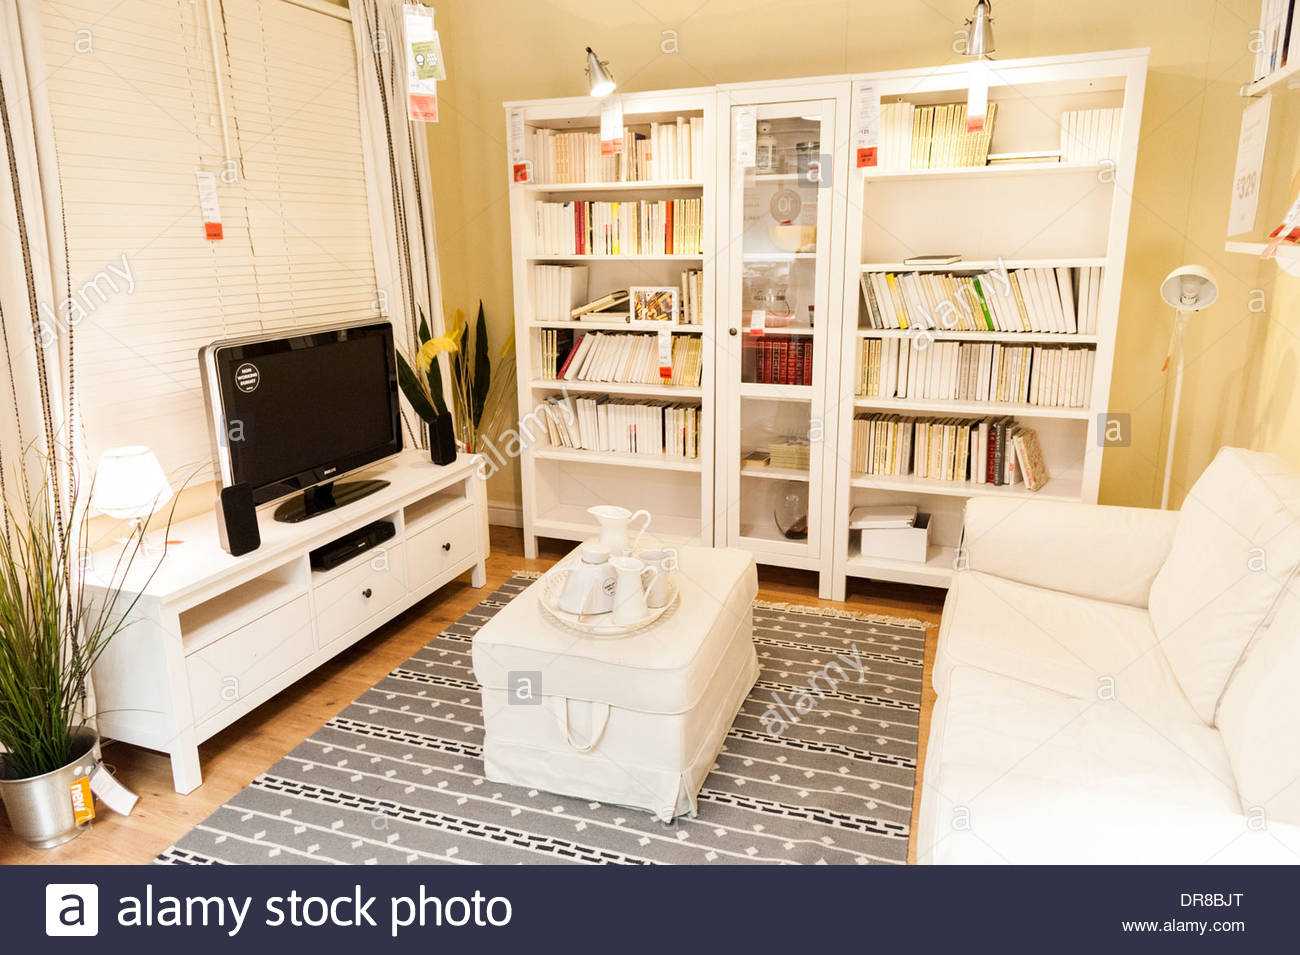 Living Room Furniture In Ikea London England Uk Stock Photo for 15 Some of the Coolest Ideas How to Make Living Room Sets Ikea